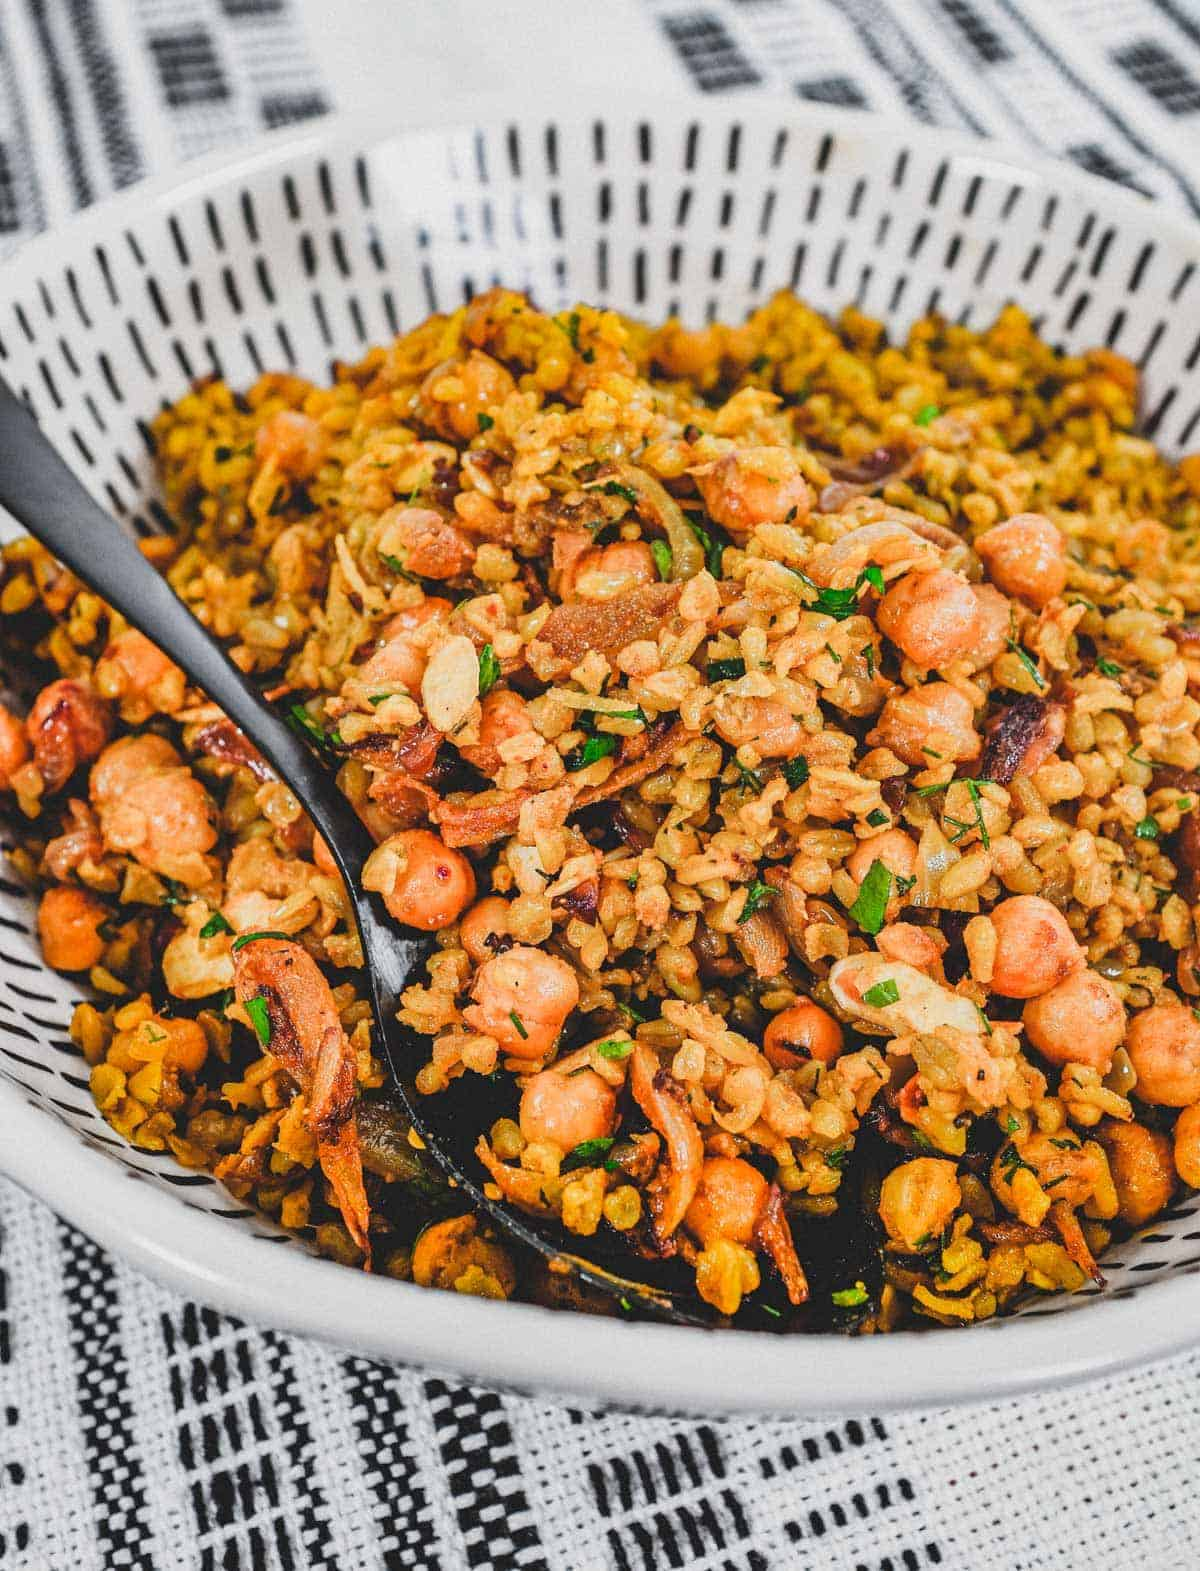 Freekeh cooked with onion and chickpeas in a large serving bowl